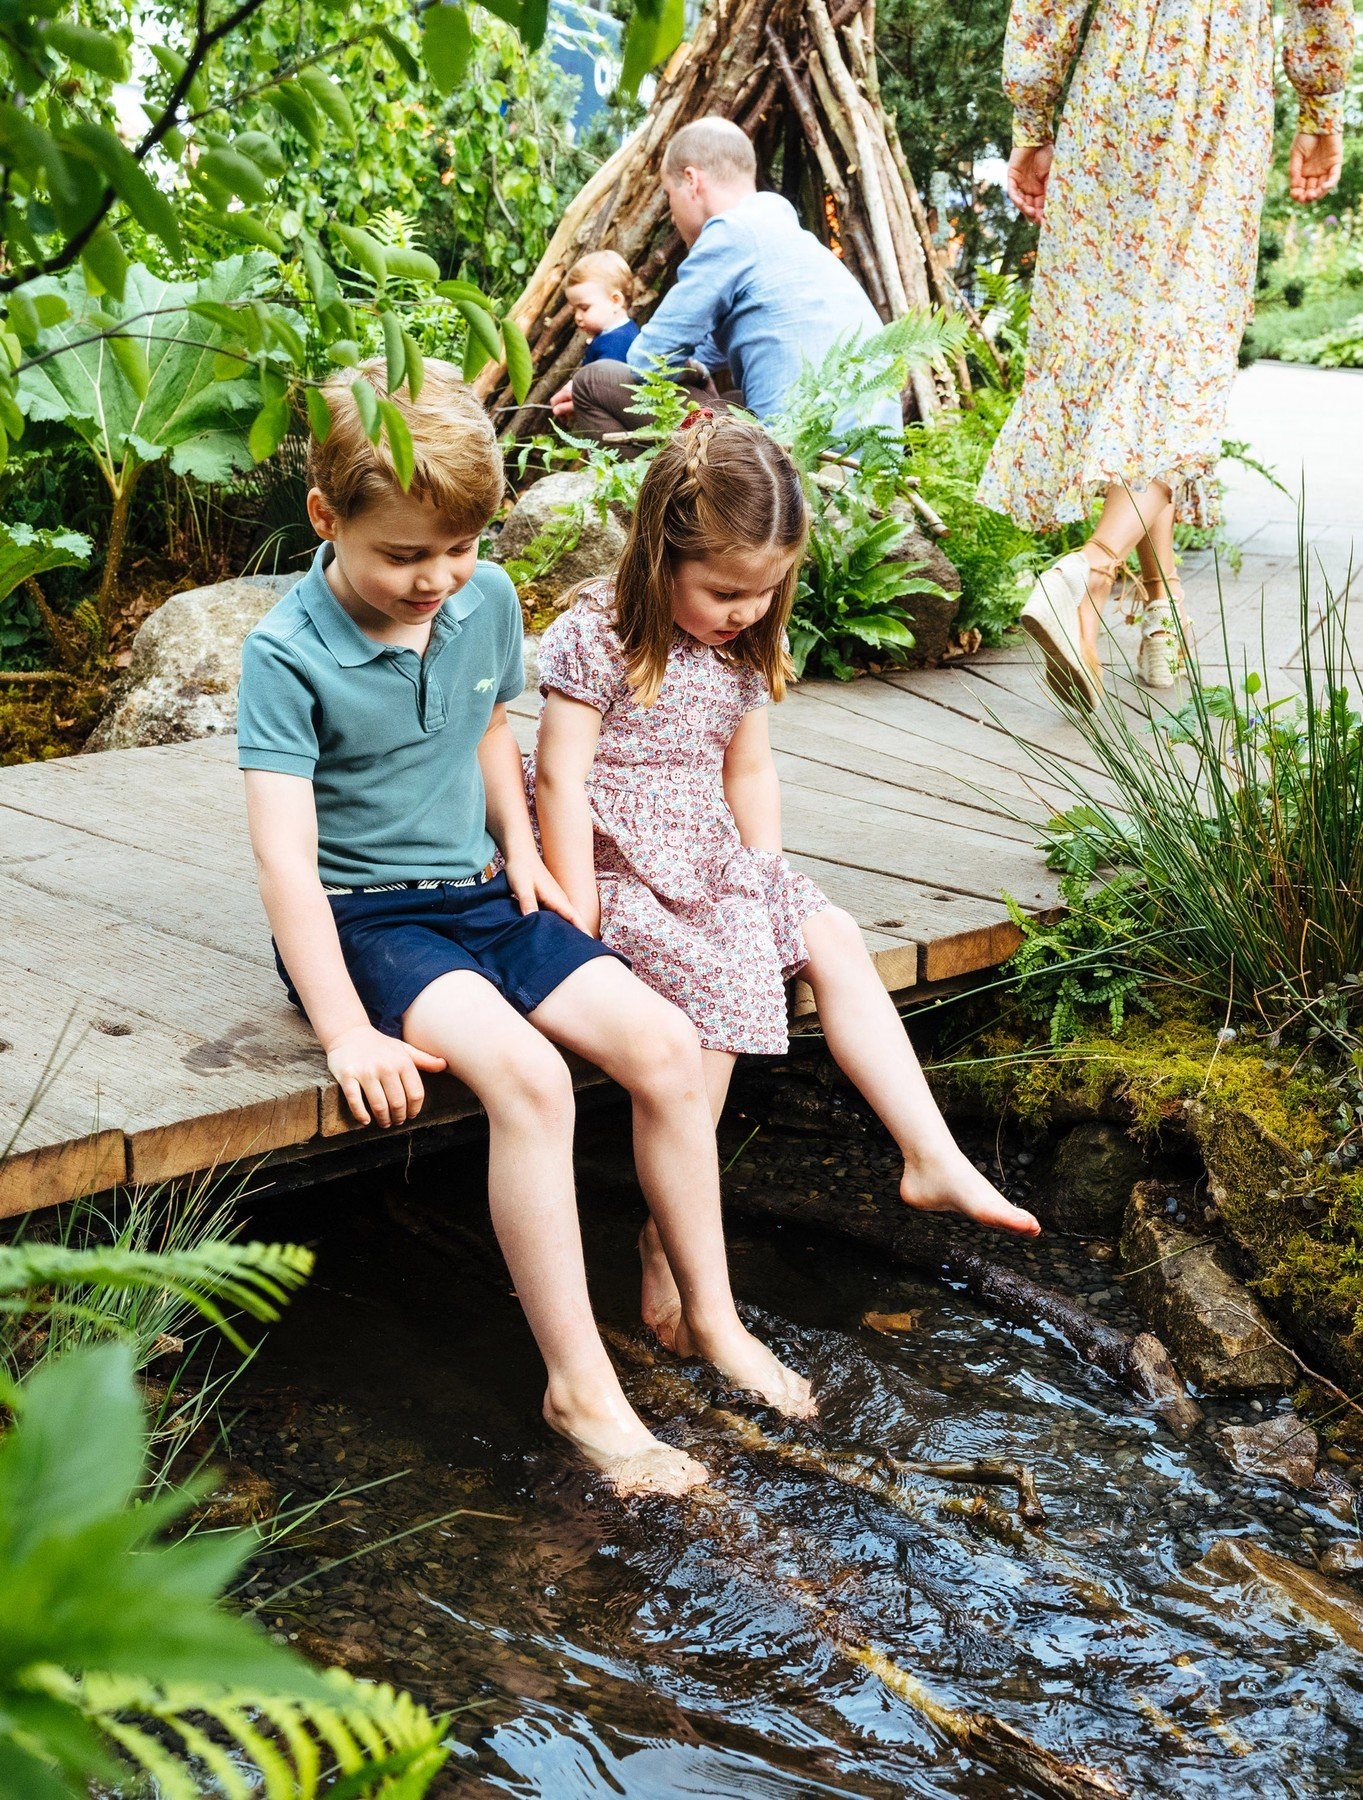 **STRICTLY EMBARGOED UNTIL 2230 BST SUNDAY MAY 19**  The Duke and Duchess of Cambridge, Prince George, Princess Charlotte and Prince Louis visit the Adam White and Andree Davies co-designed 'Back to Nature' garden during build week ahead of the RHS Chelsea Flower Show, London, UK, on the 19th May 2019.  Picture by Matt Porteous/WPA-Pool  **STRICTLY EMBARGOED TO 2230 BST SUNDAY MAY 19** EDITORIAL USE ONLY. 19 May 2019, Image: 434580650, License: Rights-managed, Restrictions: NO United Kingdom, Model Release: no, Credit line: Profimedia, Mega Agency